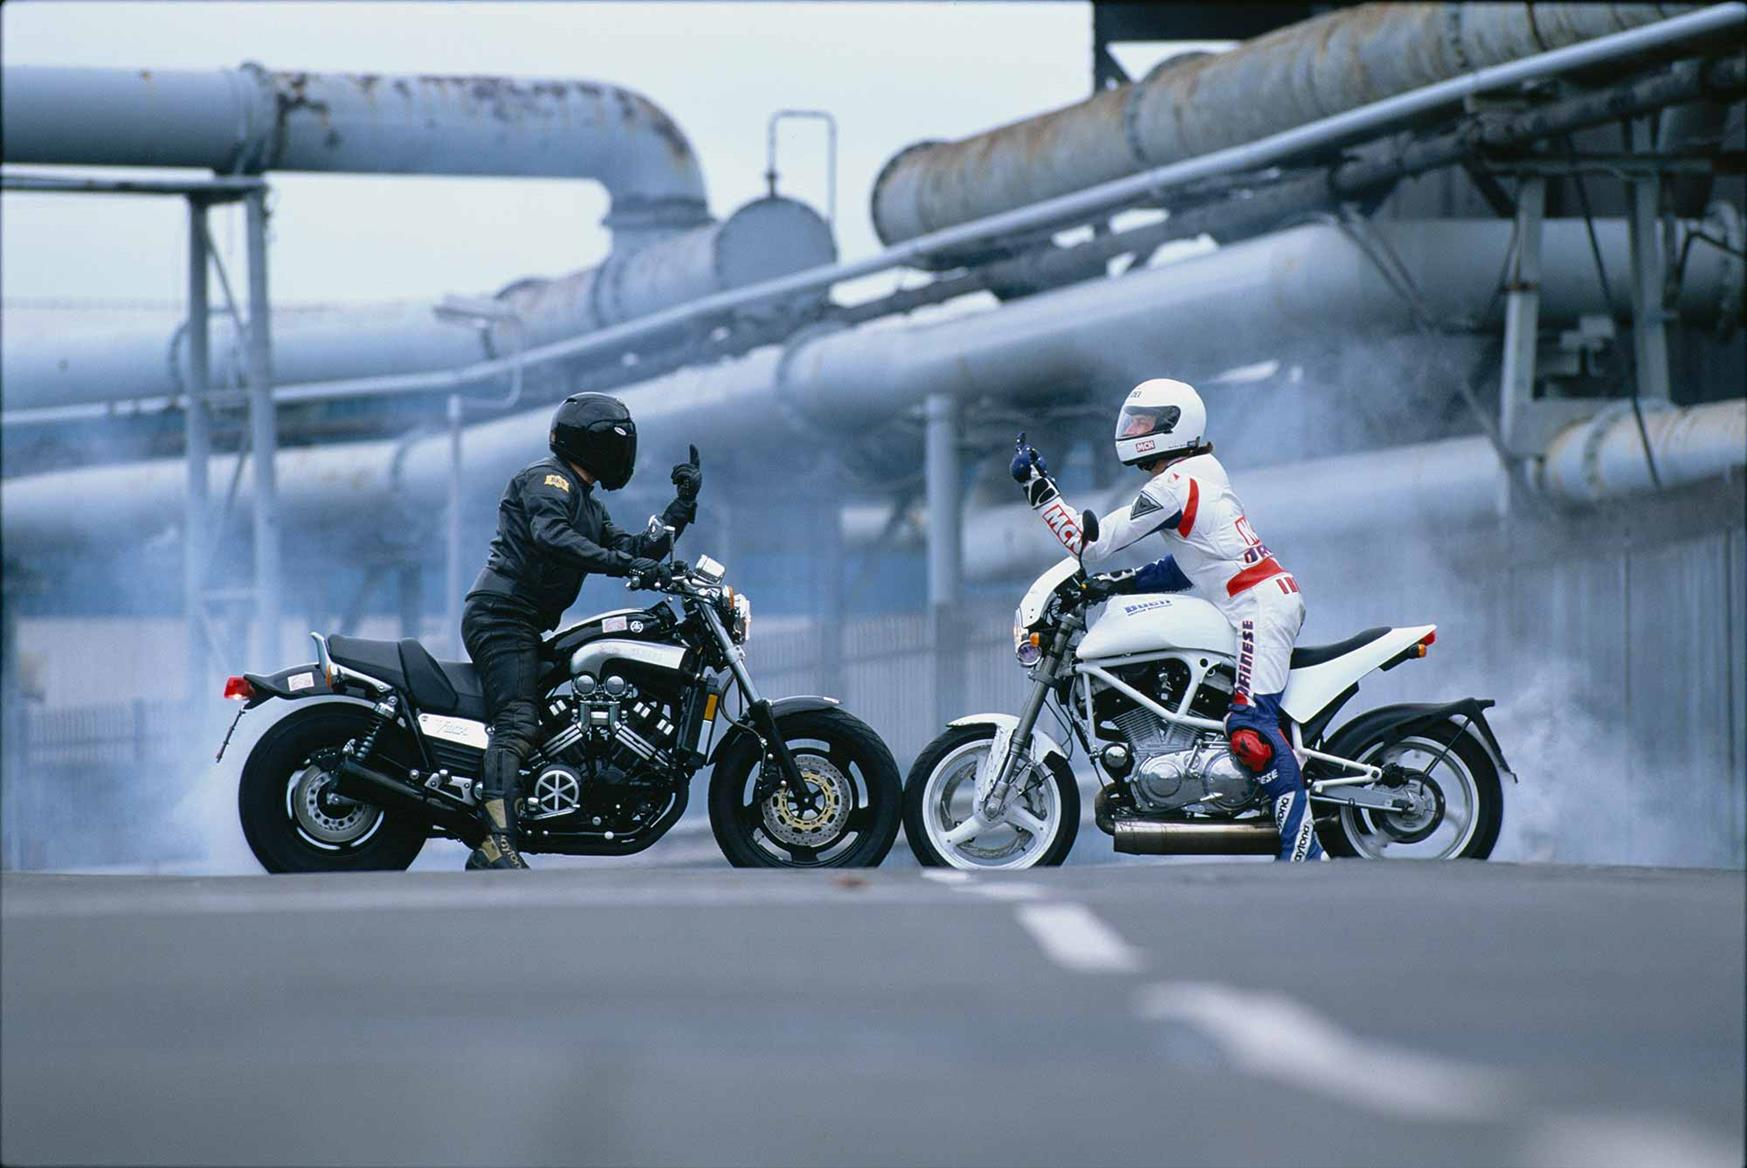 A Yamaha V-Max pulls a burnout with the Buell S1 White Lightning